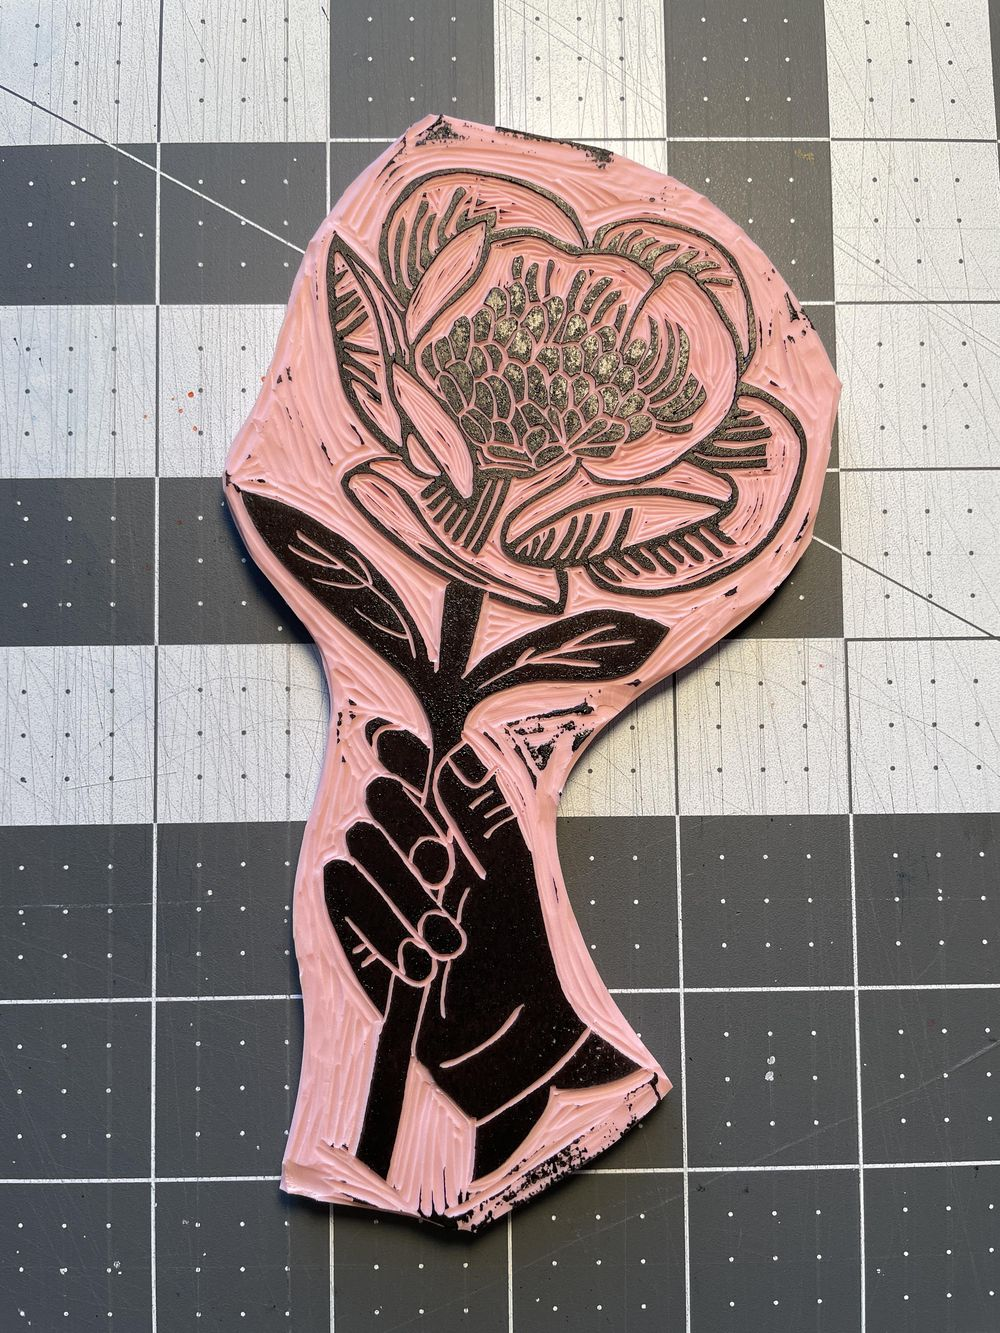 First block print! - image 2 - student project